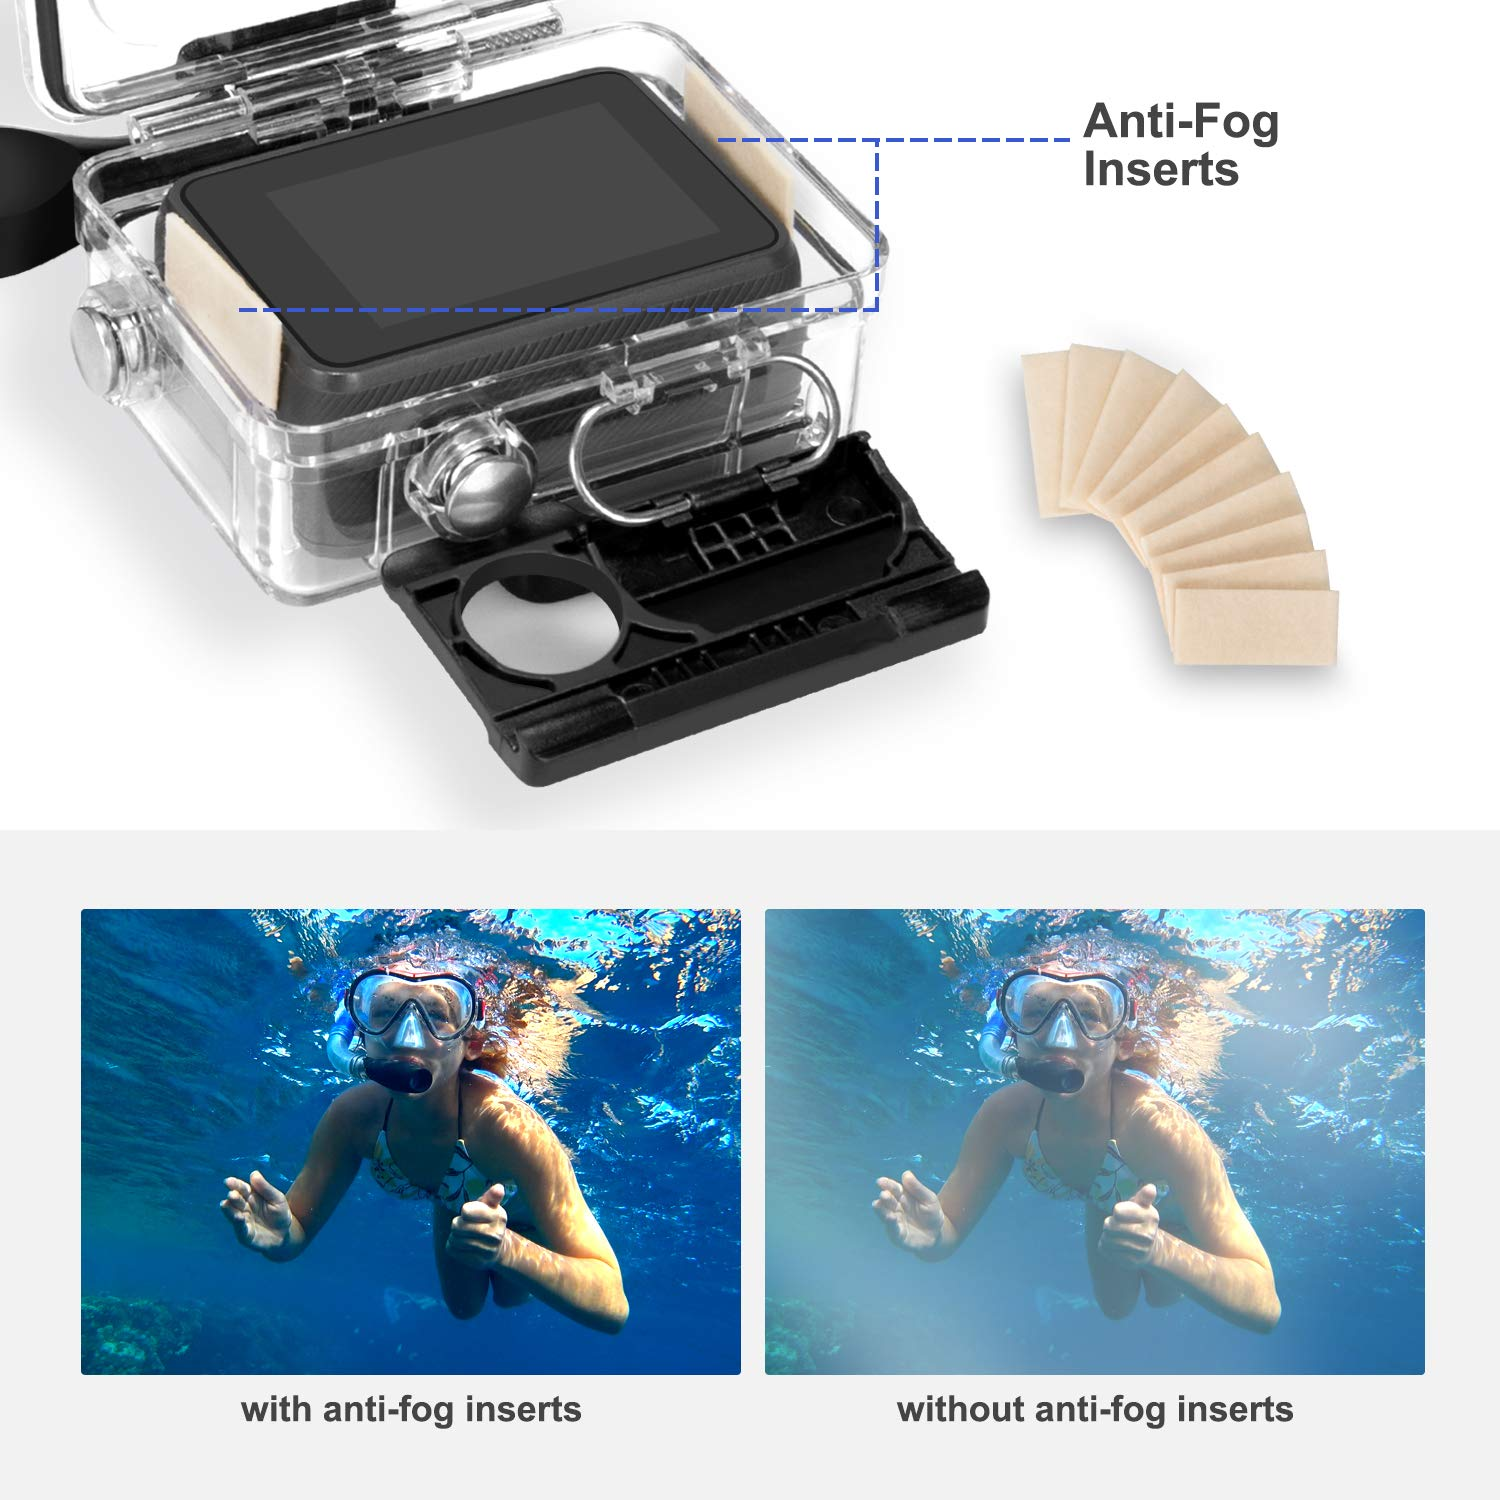 Waterproof /& Enhances Colors Rhodesy Waterproof Case Housing for GoPro Hero 8 Black Hero Waterproof Housing Protective Case 3 Pack Dive Filter Accessories For GoPro Action Camera